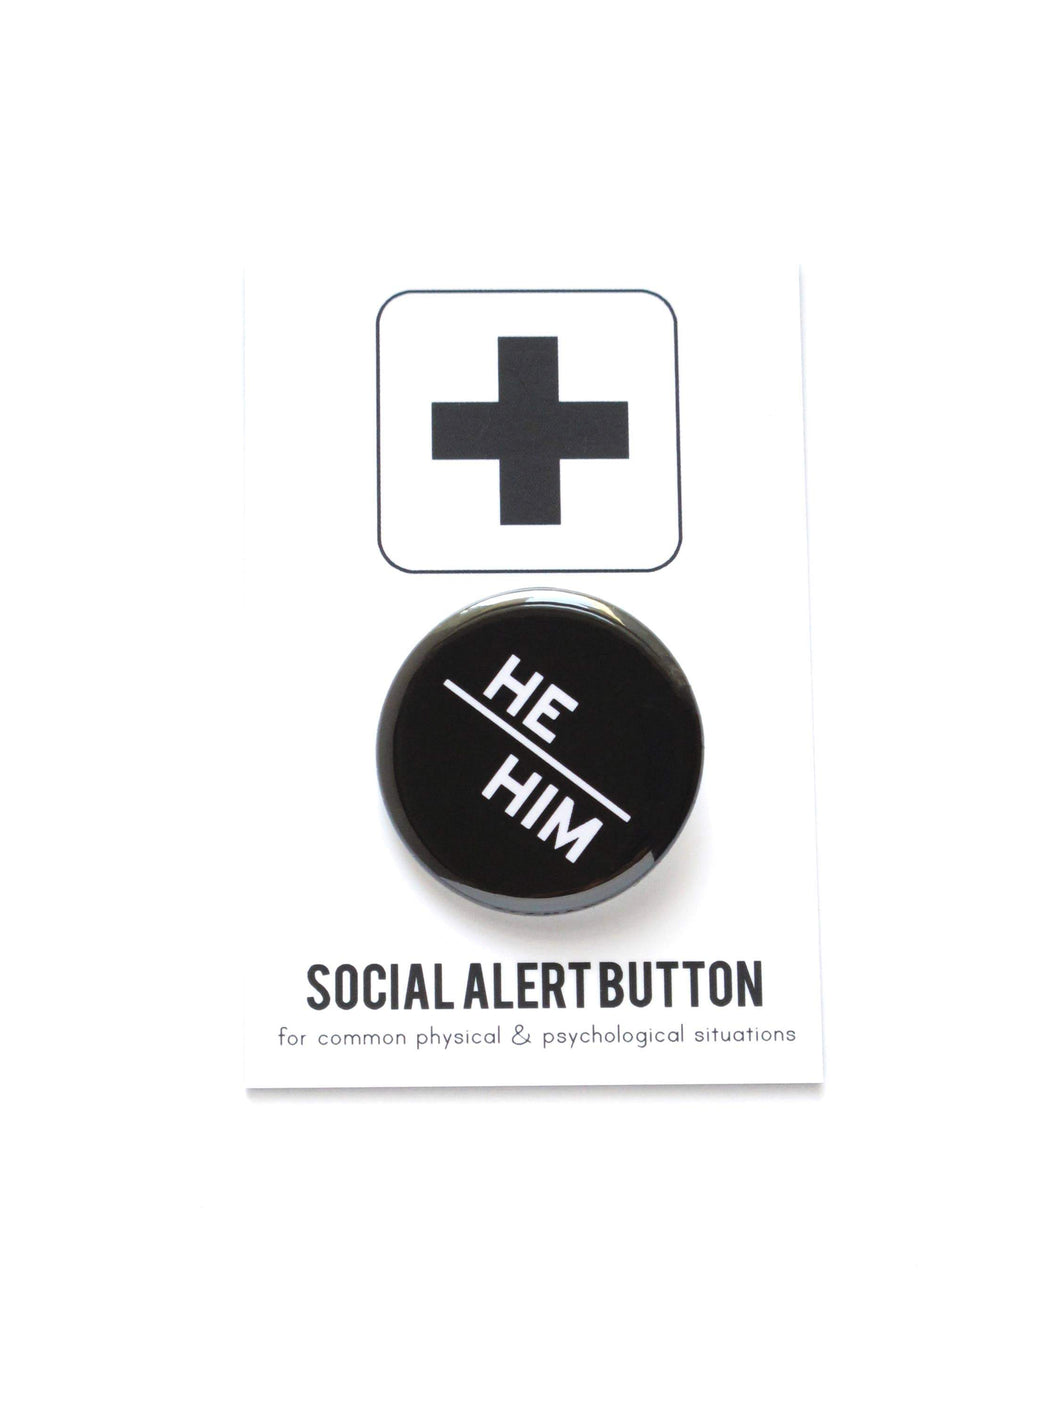 He/Him Pronoun Button-Buttons-WORD FOR WORD-default-COMMON DEAR